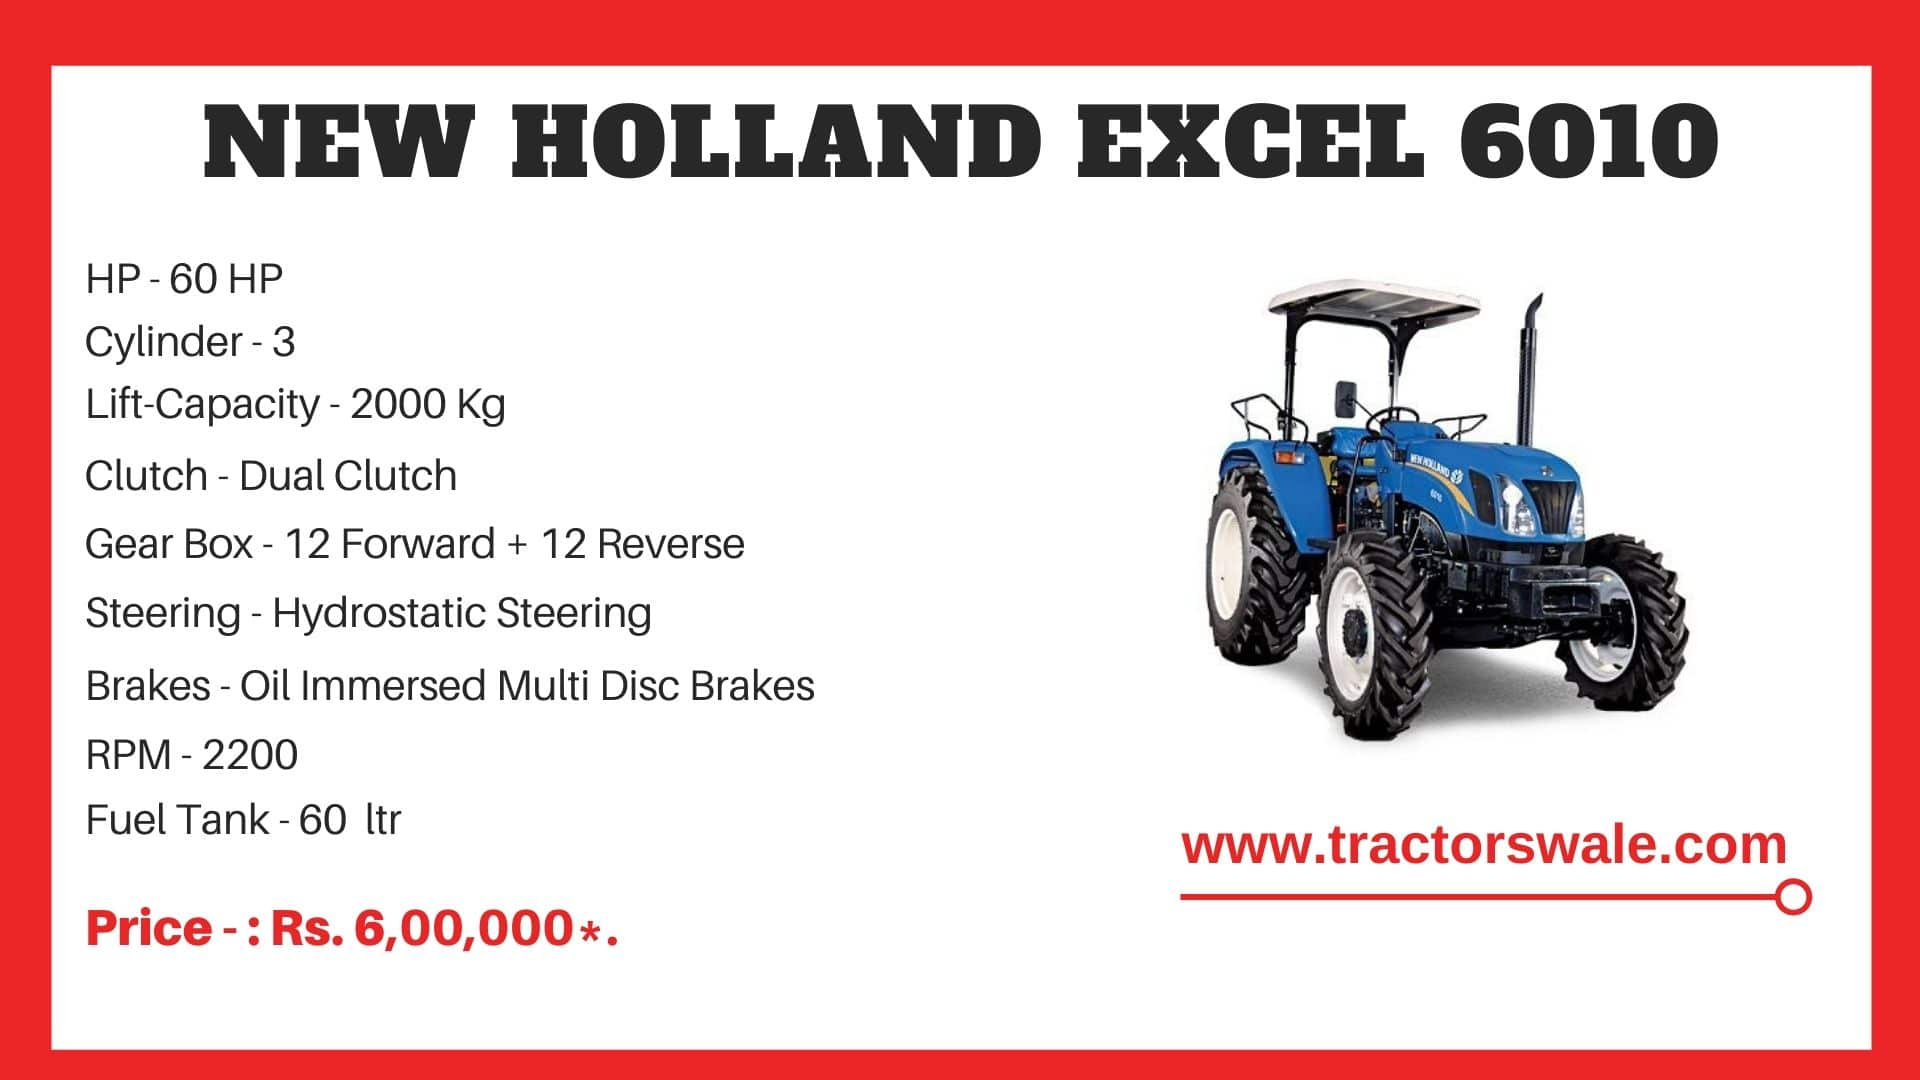 New Holland Excel 6010 tractor specs